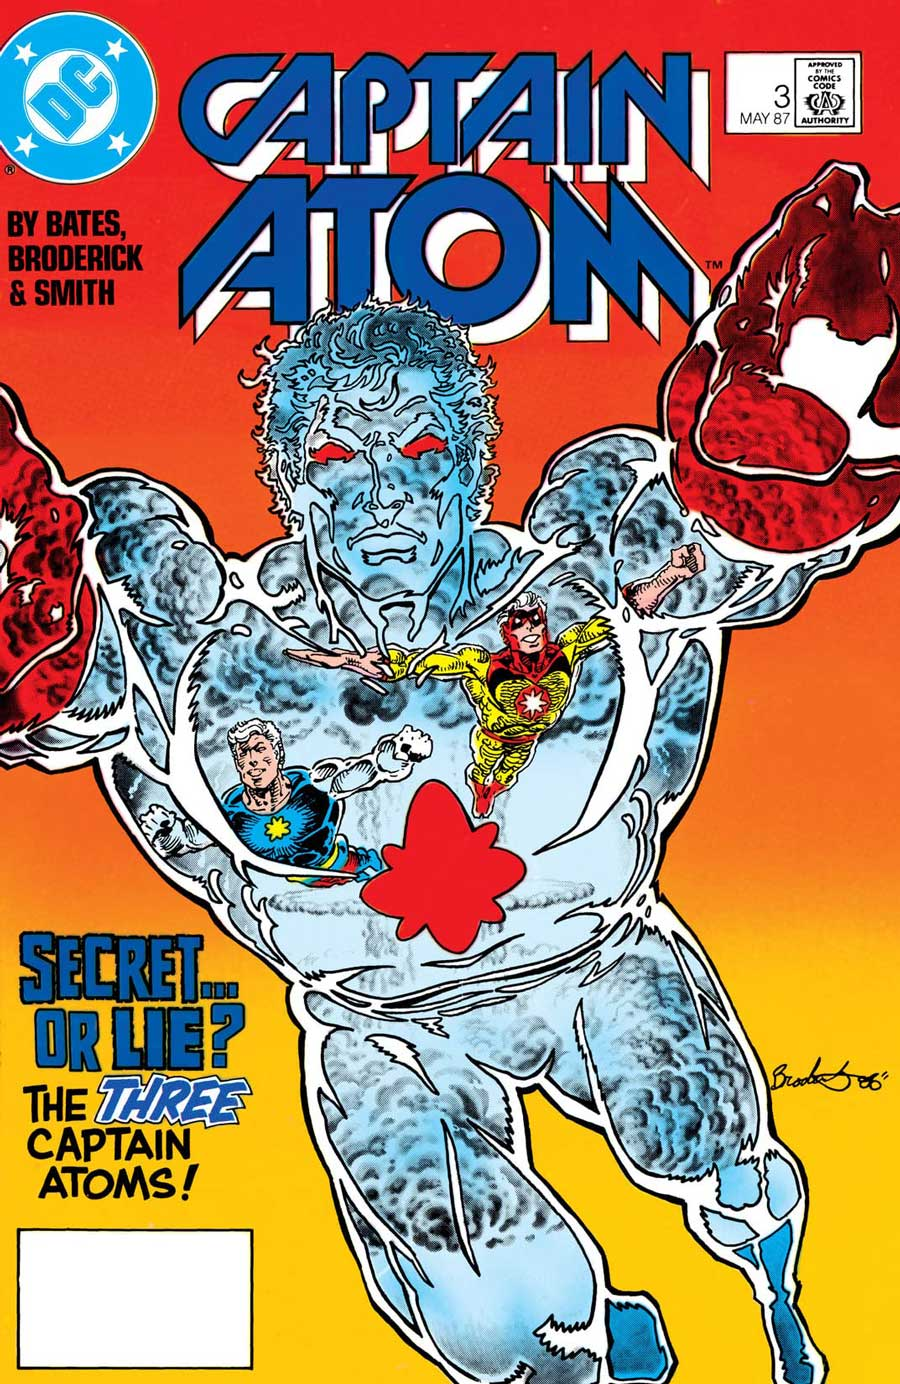 Captain Atom #3 - Blast From The Past released by DC Comics on May 1987